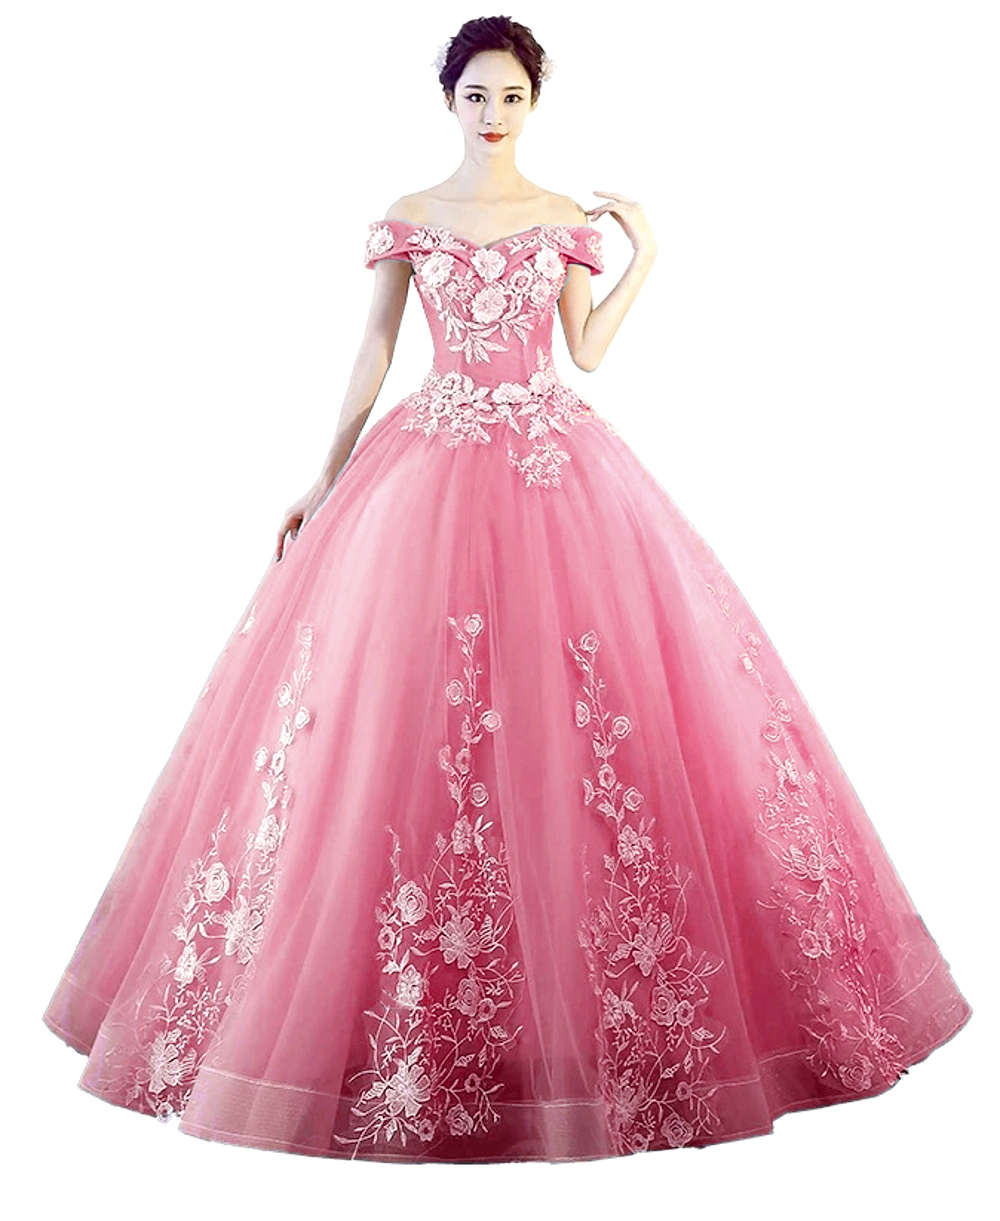 2019 New Cameo Brown Quinceanera Dresses Tulle With Lace Appliques Masquerade Ball Gown Sweet 16 Dress